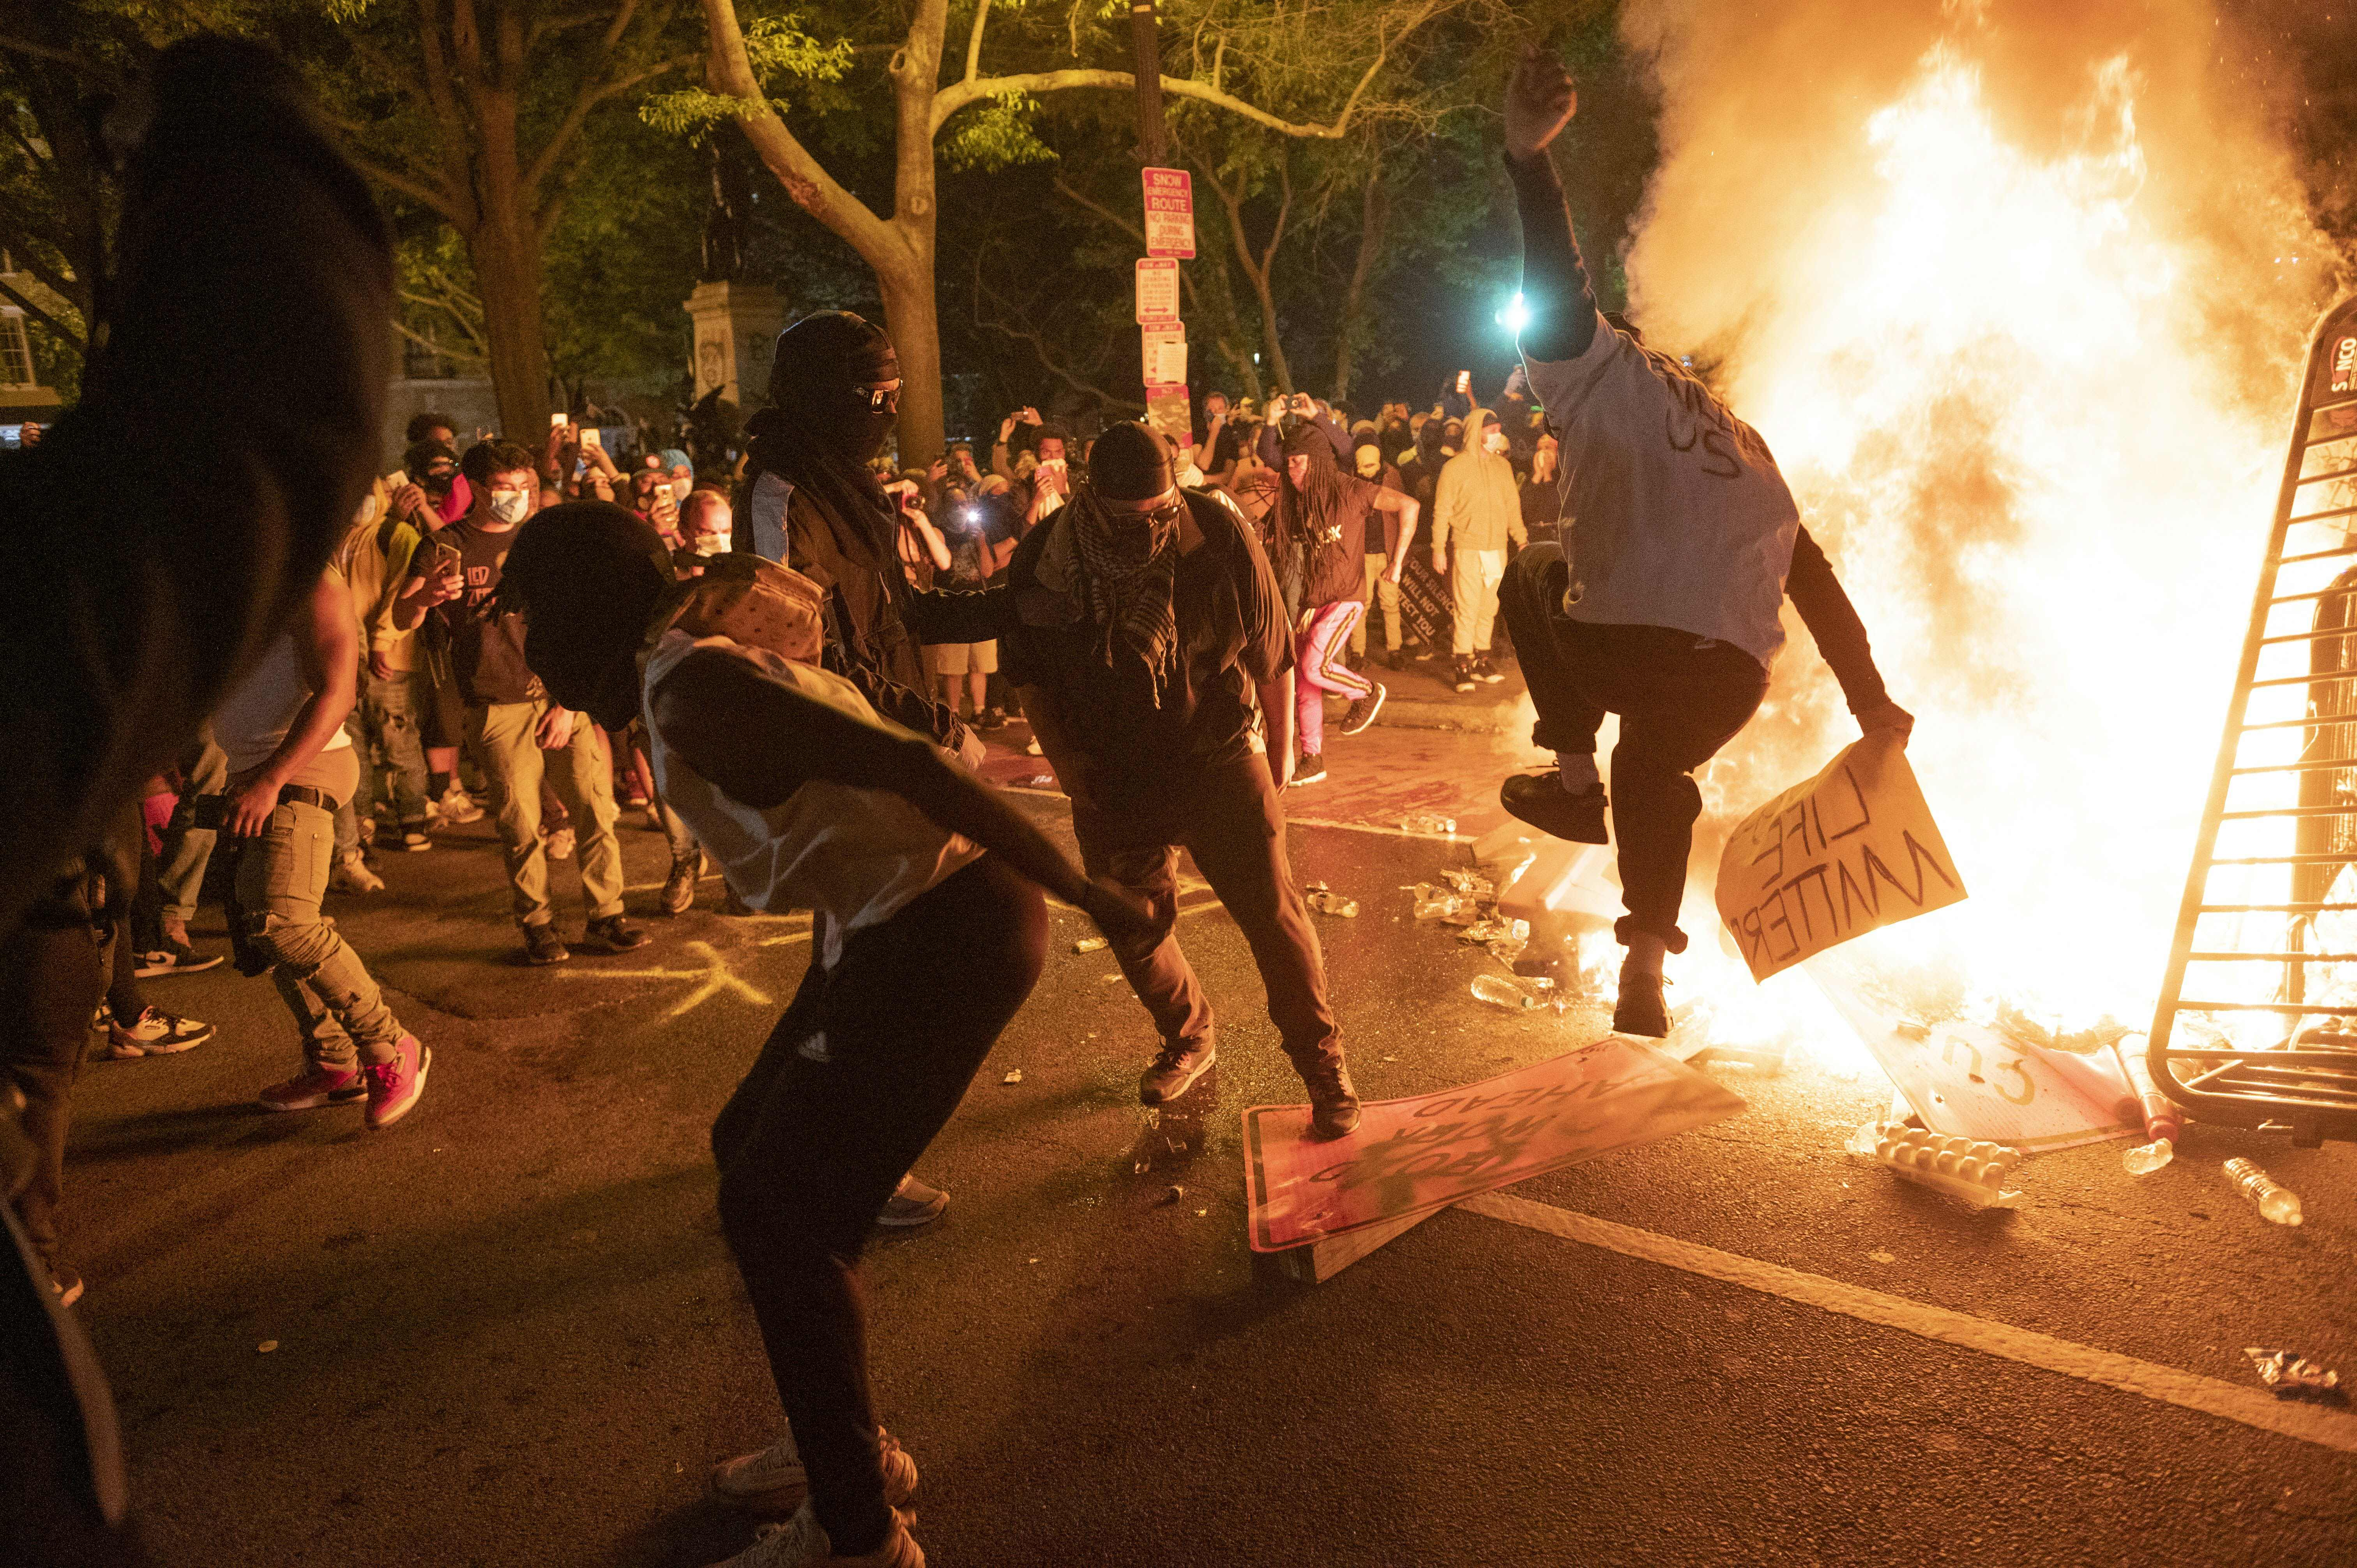 Protesters jump on a street sign near a burning barricade during a demonstration against the death of George Floyd near the White House on May 31, 2020 in Washington, DC. - Thousands of National Guard troops patrolled major US cities after five consecutive nights of protests over racism and police brutality that boiled over into arson and looting, sending shock waves through the country. The death Monday of an unarmed black man, George Floyd, at the hands of police in Minneapolis ignited this latest wave of outrage in the US over law enforcement's repeated use of lethal force against African Americans -- this one like others before captured on cellphone video. (Photo by ROBERTO SCHMIDT/AFP via Getty Images)